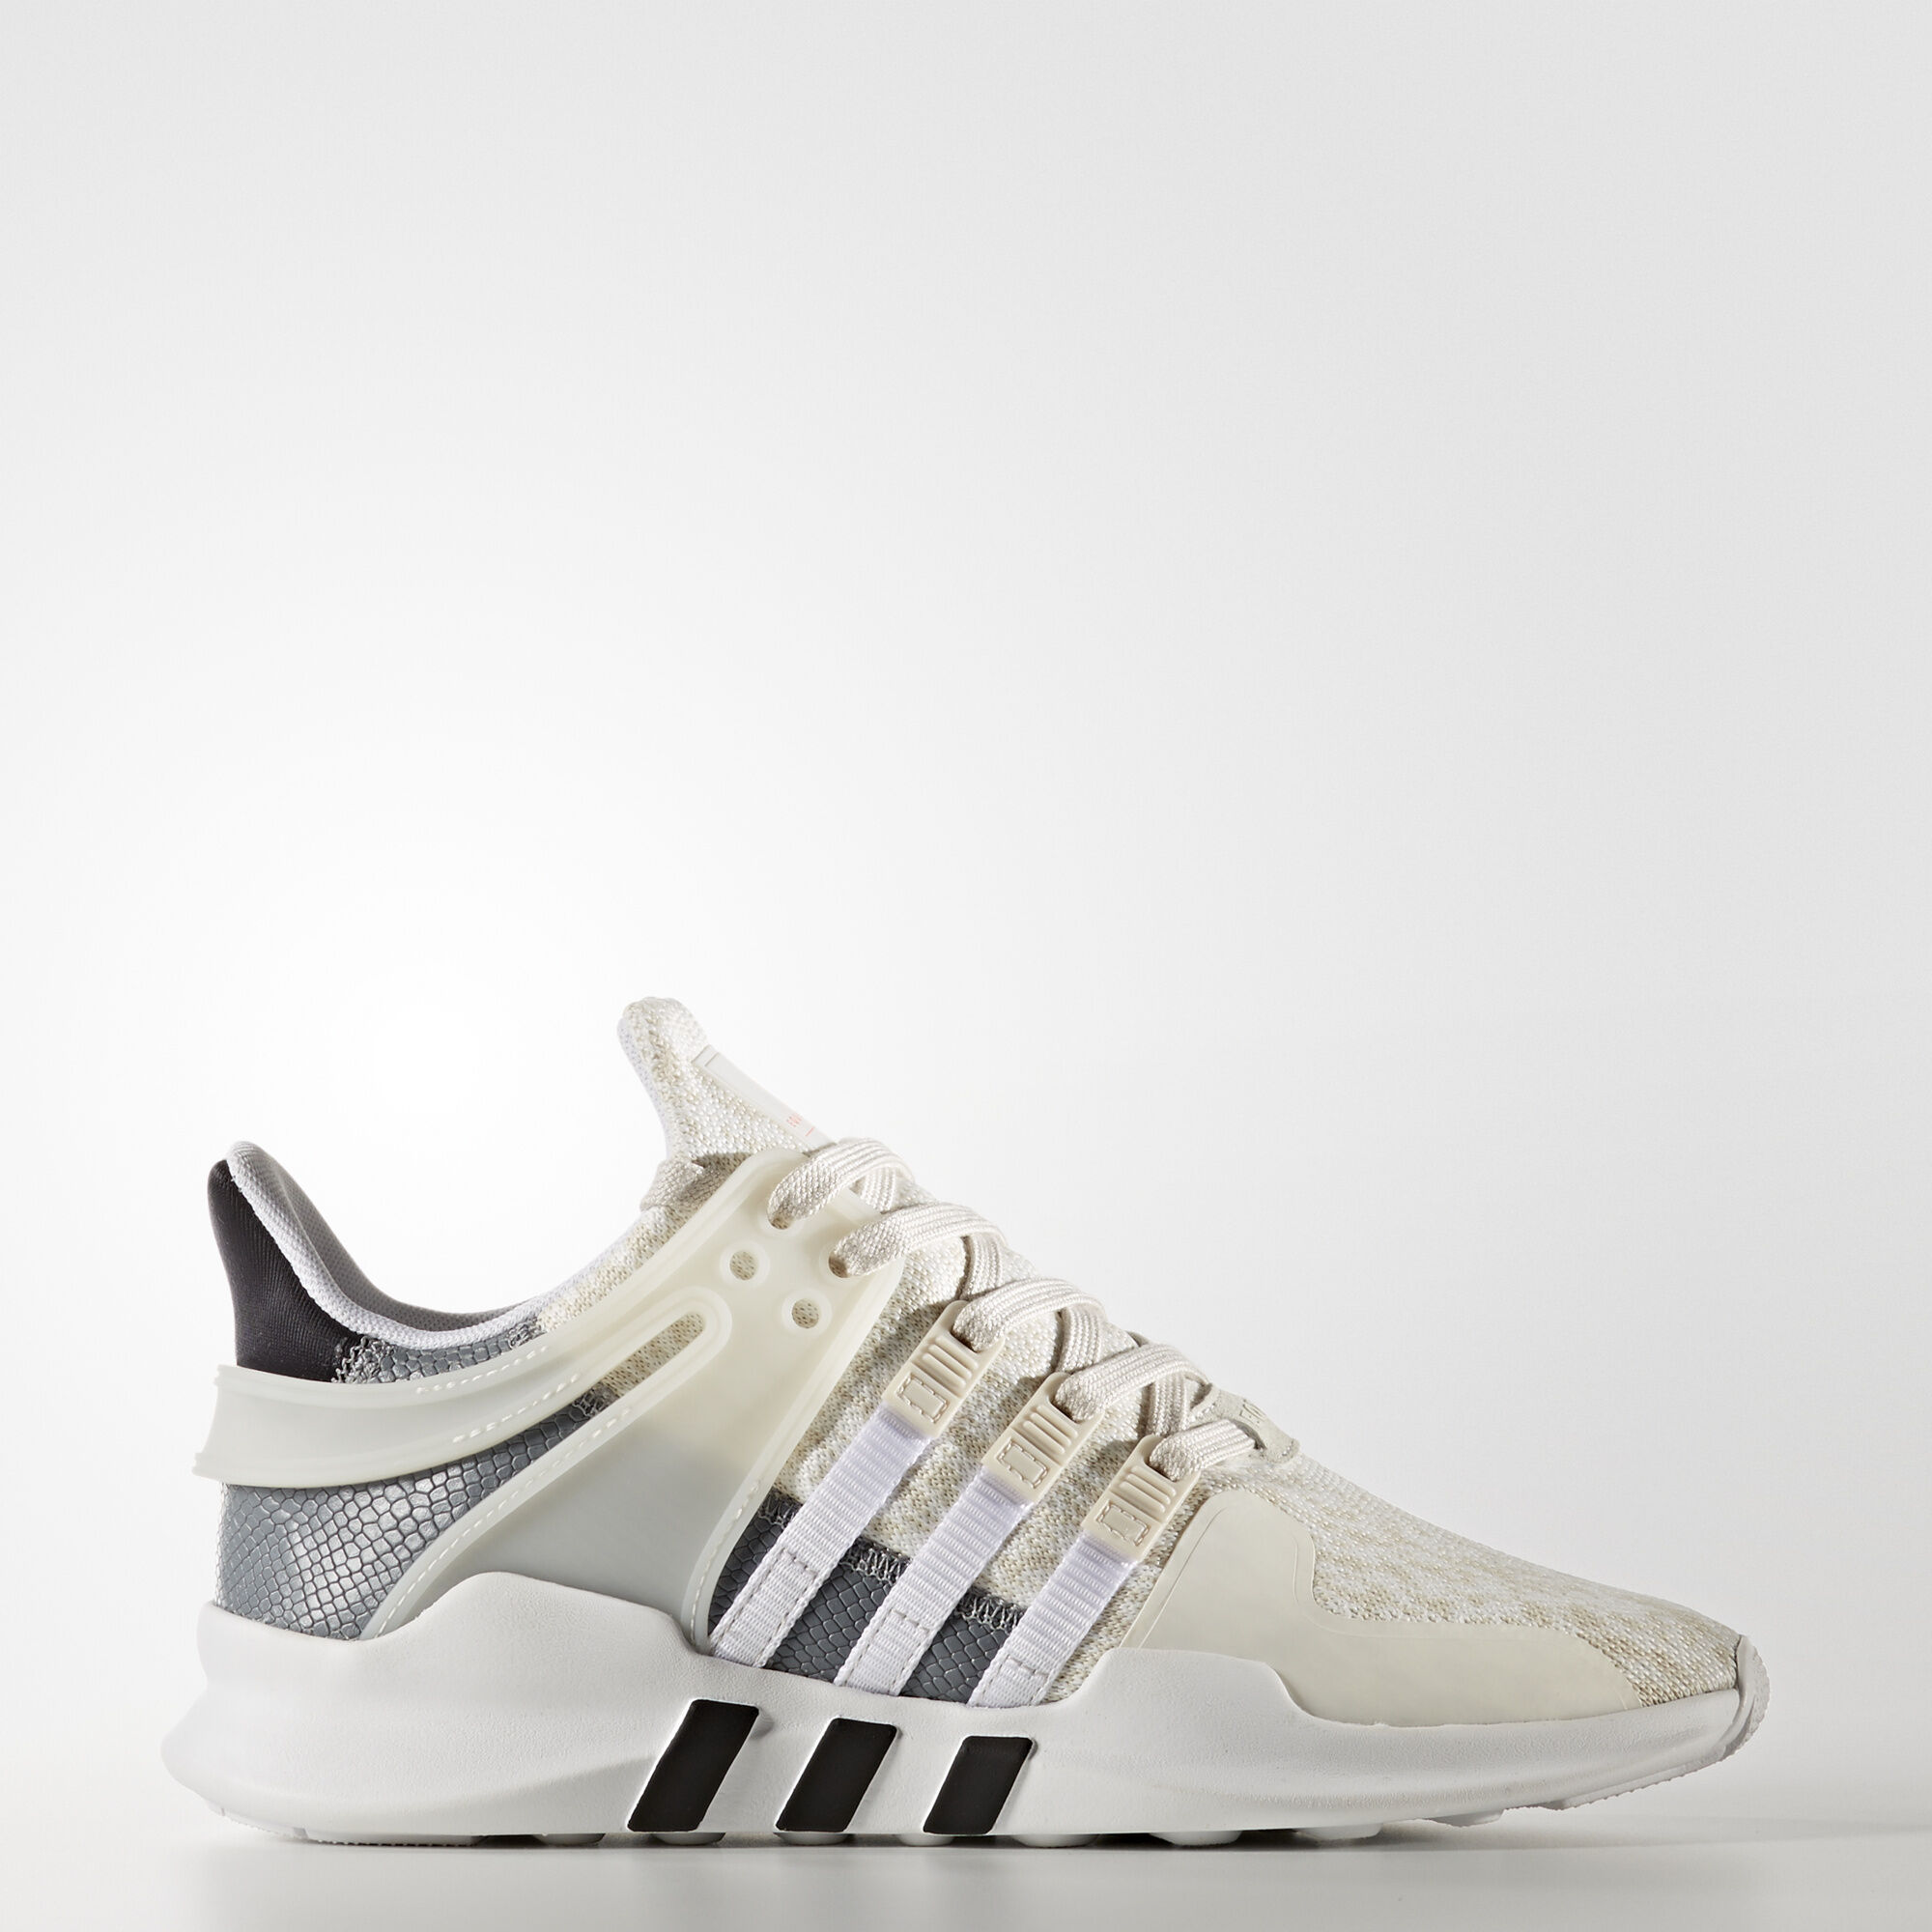 Adidas Equipment 'EQT' Support 9317 White Turbo Review and On